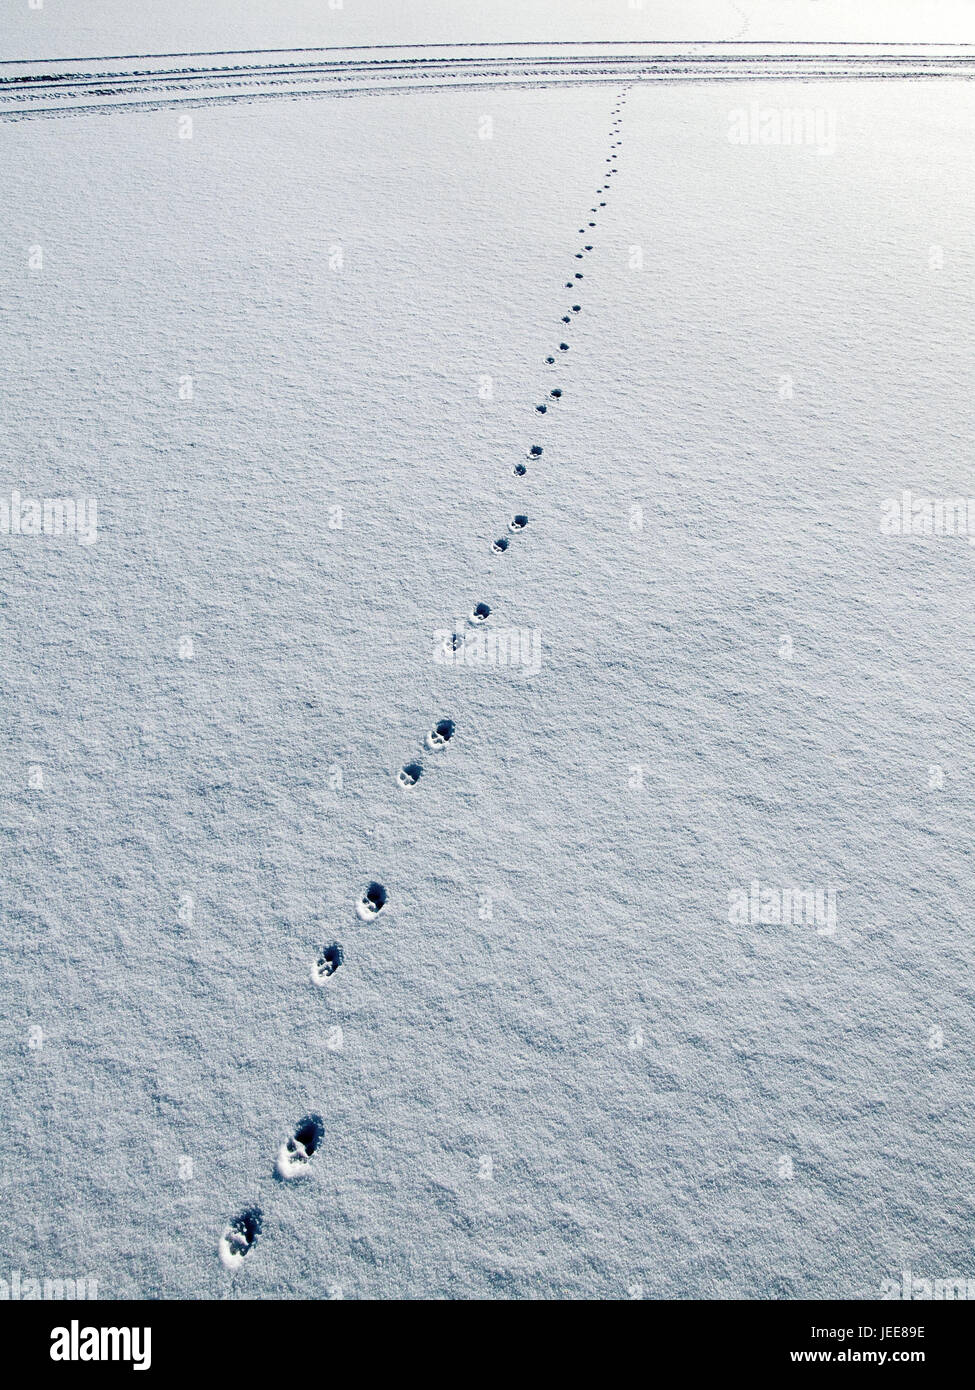 Snow surface, animal tracks, snow, impressions, track, animal, paws, paw impressions, snow caps, deserted, exit, - Stock Image